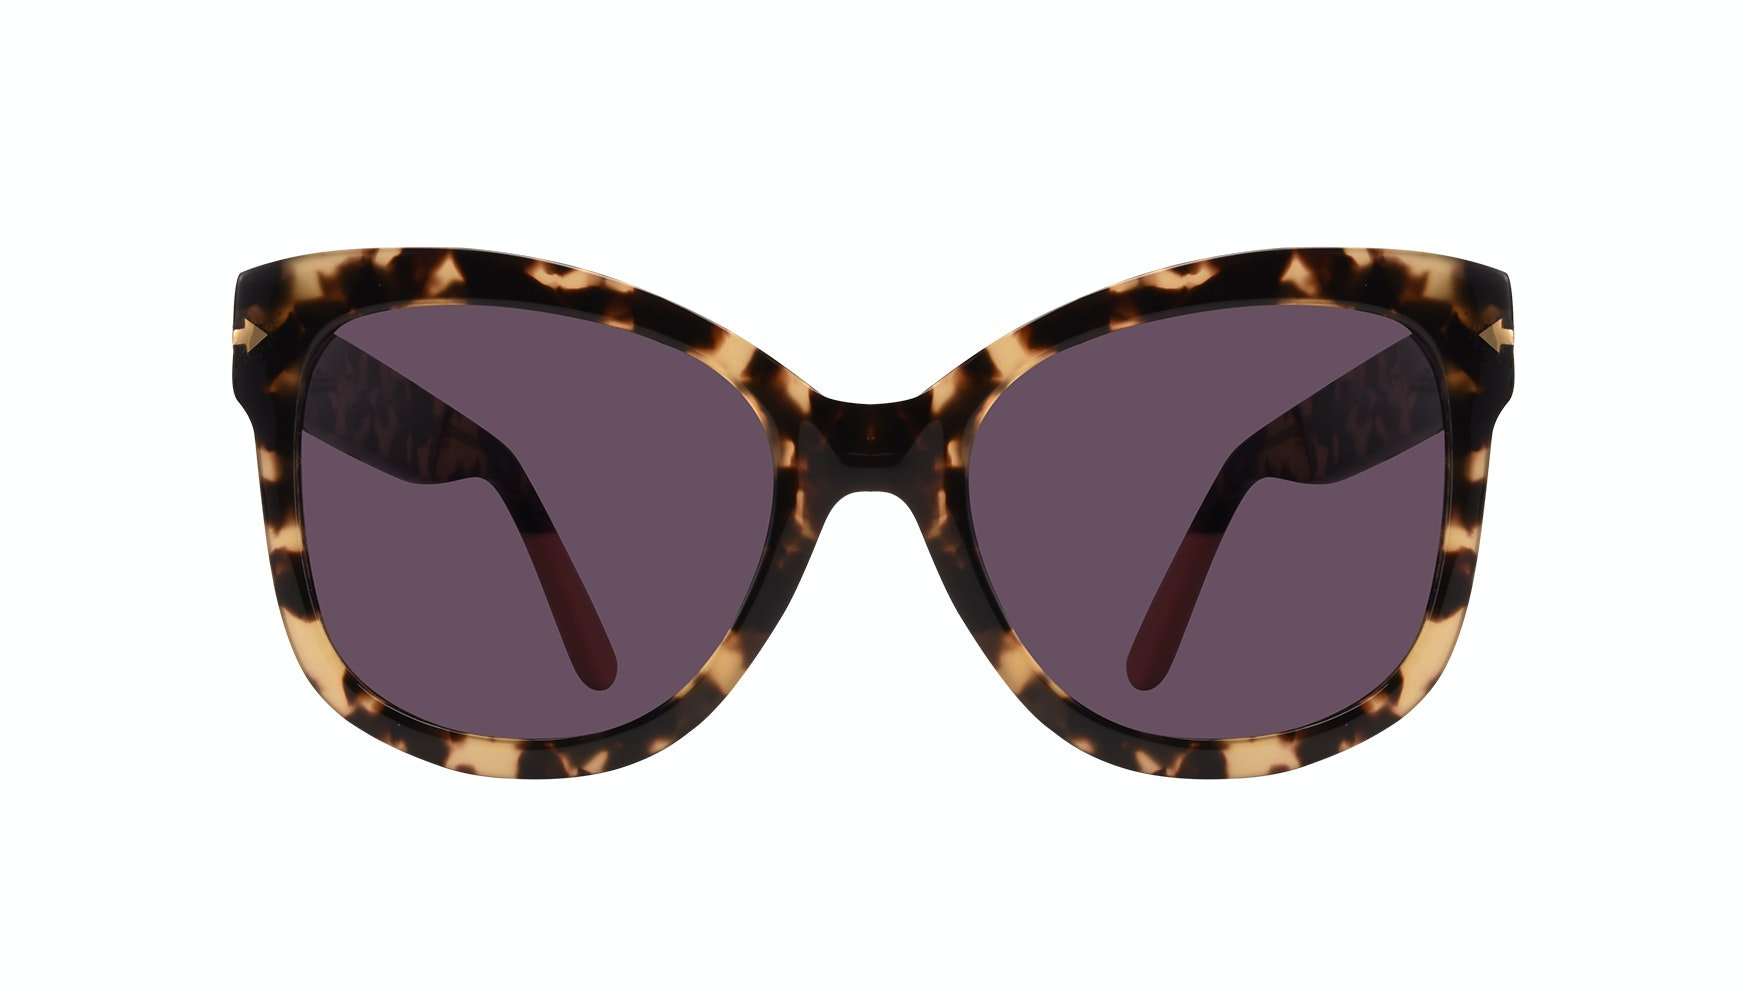 Affordable Fashion Glasses Cat Eye Square Sunglasses Women Marlo Espresso Front